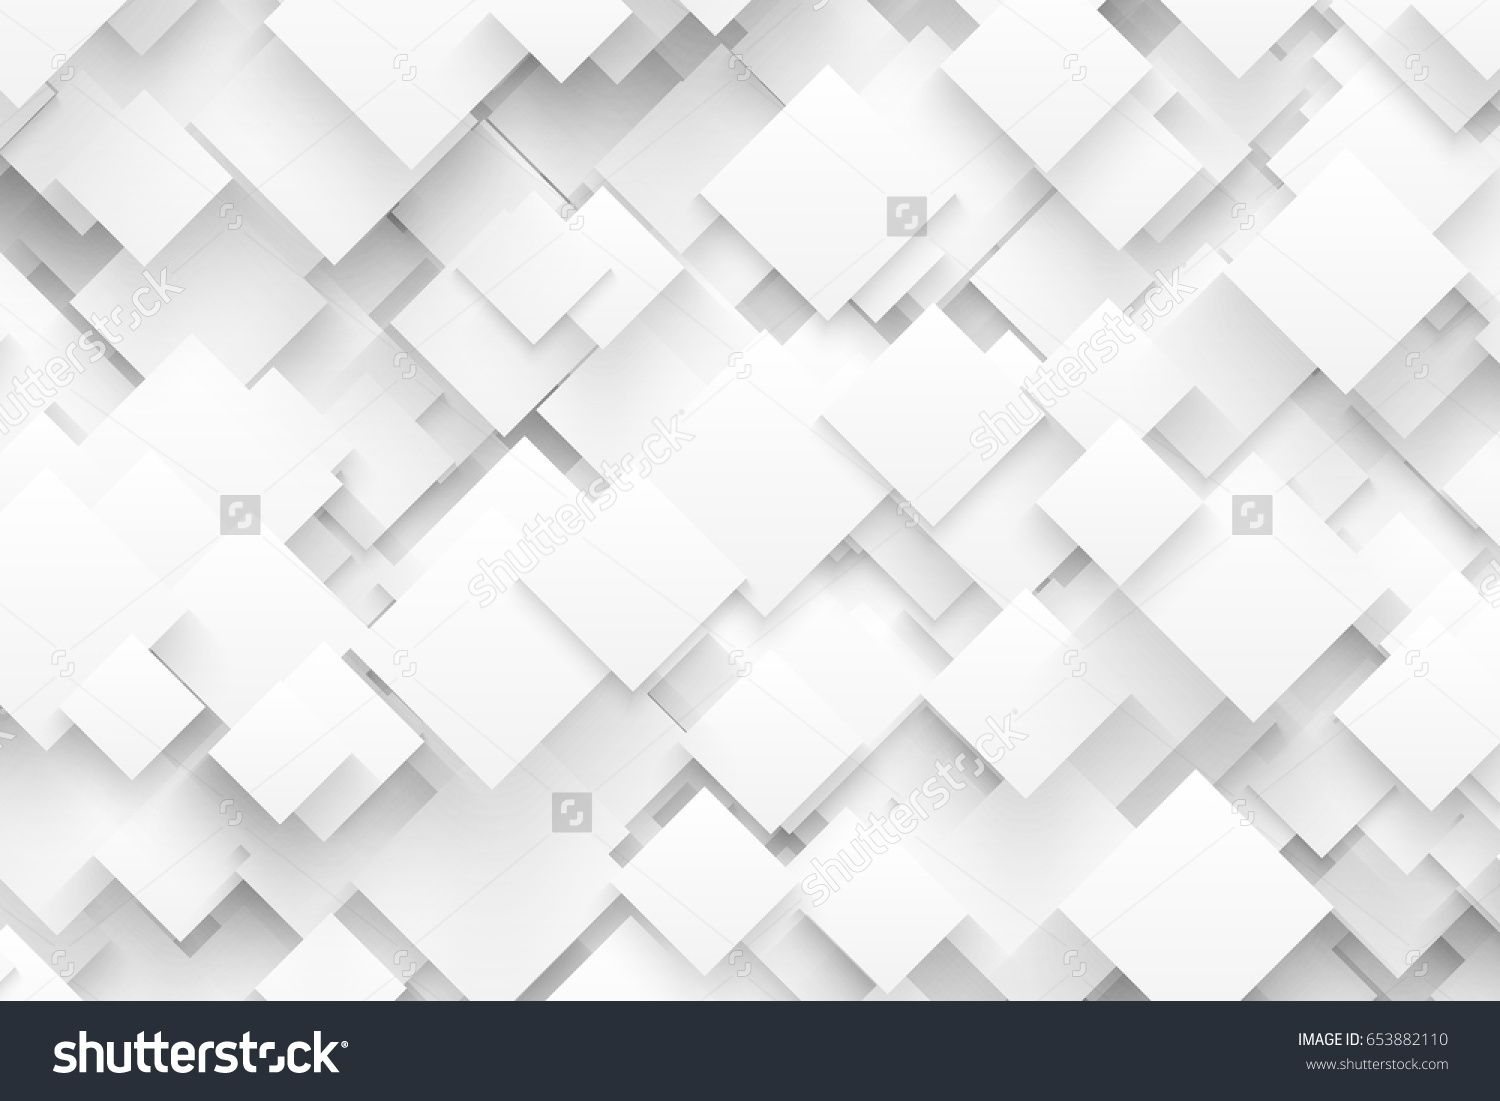 Abstract 3d Vector Technology White Background Technological Crystalline Structure Blank Backdrop Vector Technology White Background Abstract